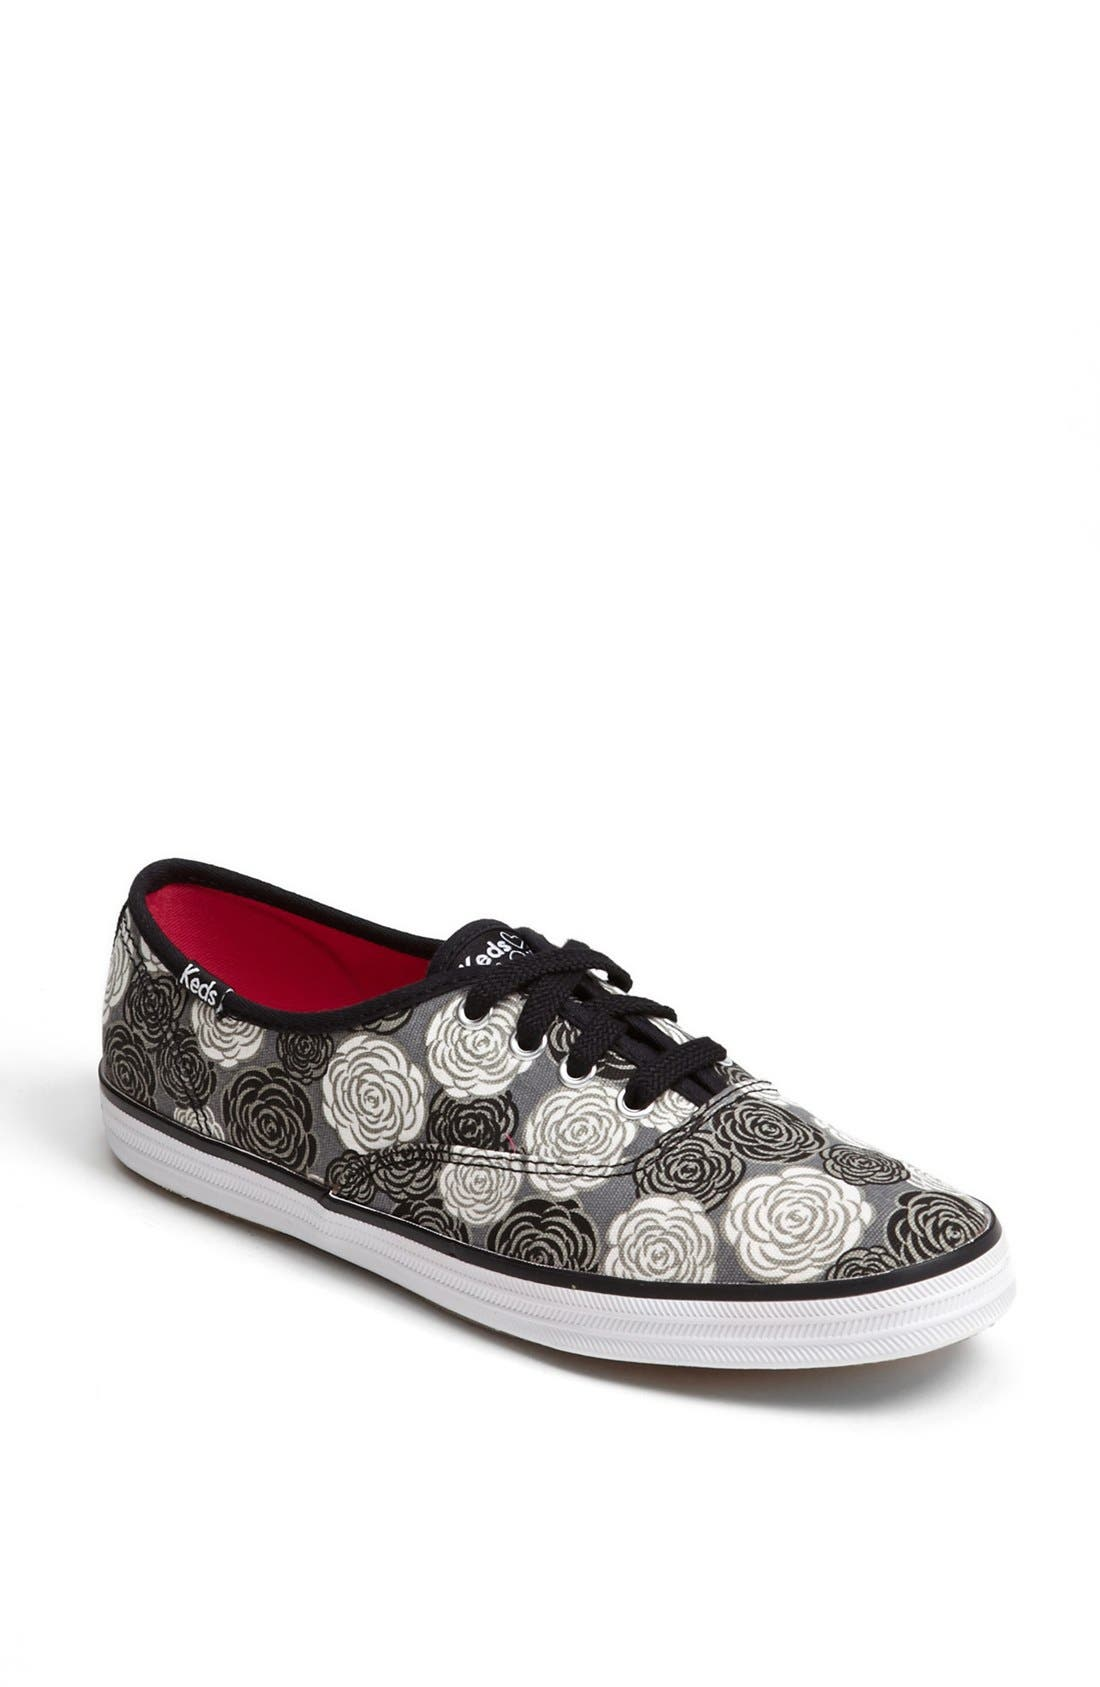 KEDS<SUP>®</SUP> Taylor Swift Sneaker, Main, color, 017